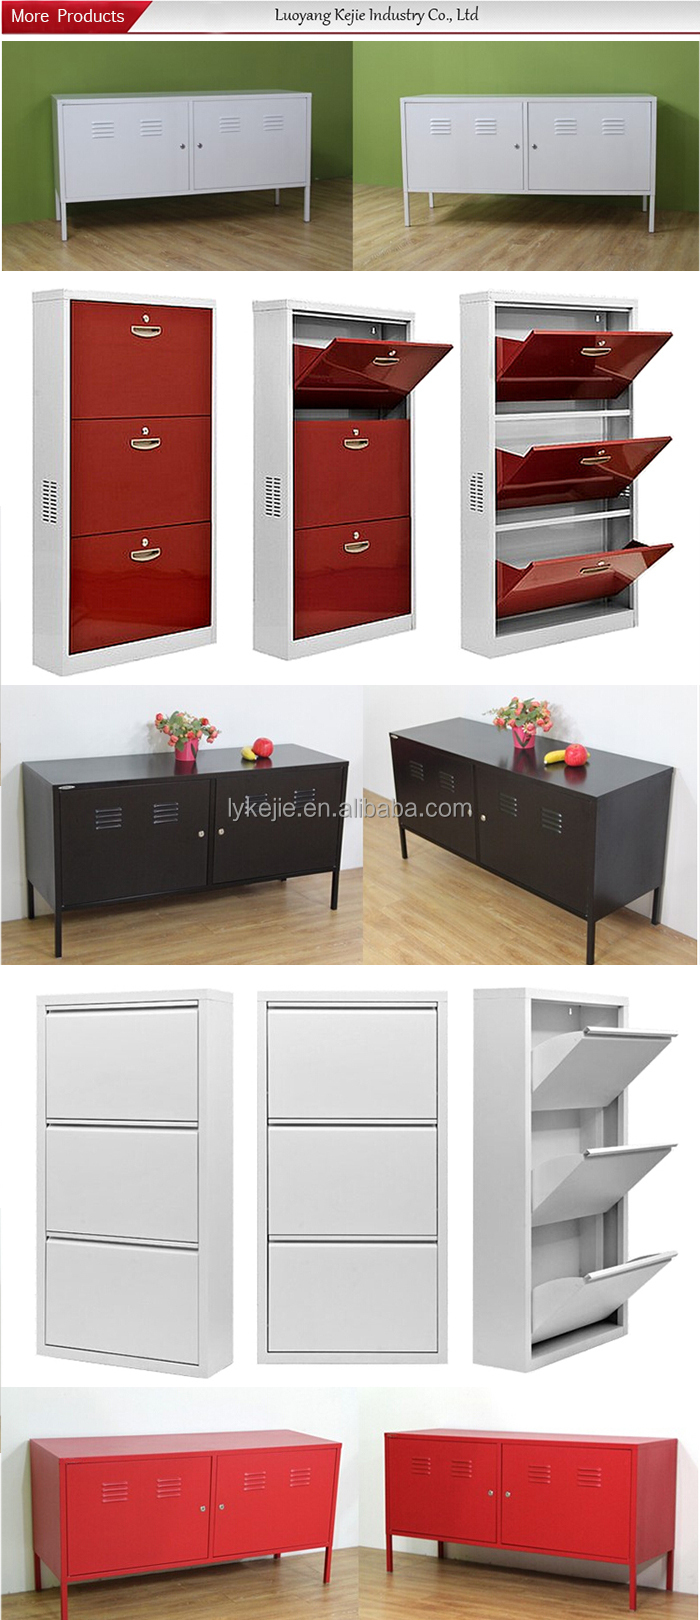 General Use For Office Compact Shelving Electric Mobile Filing ...